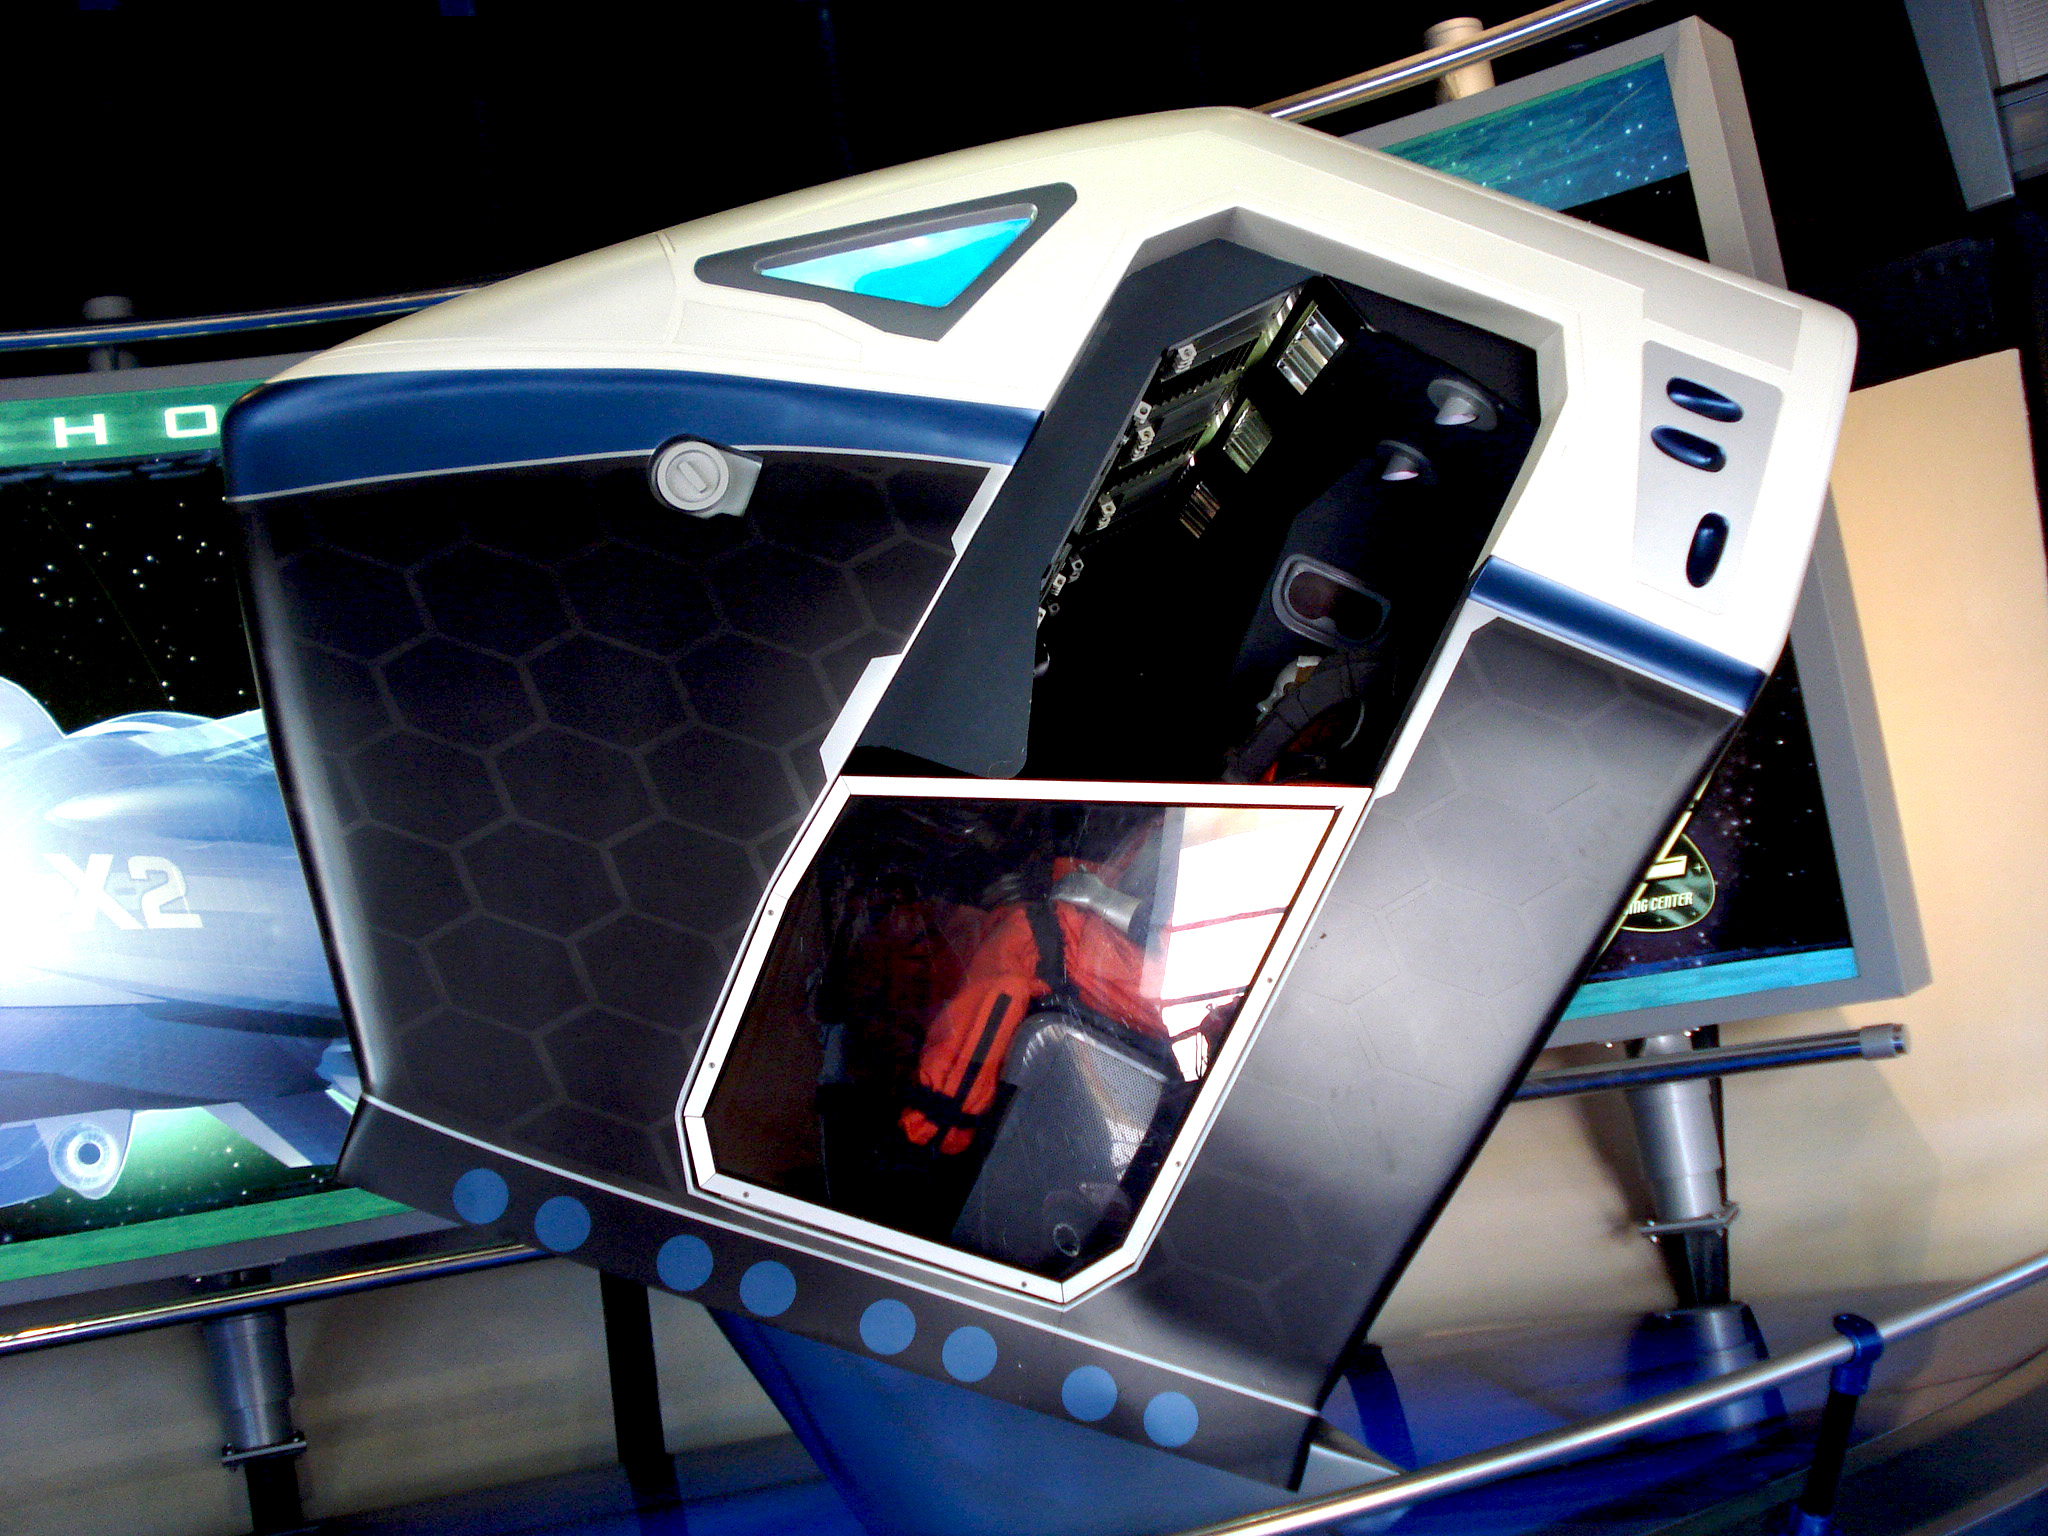 Test car at Mission Space in Epcot